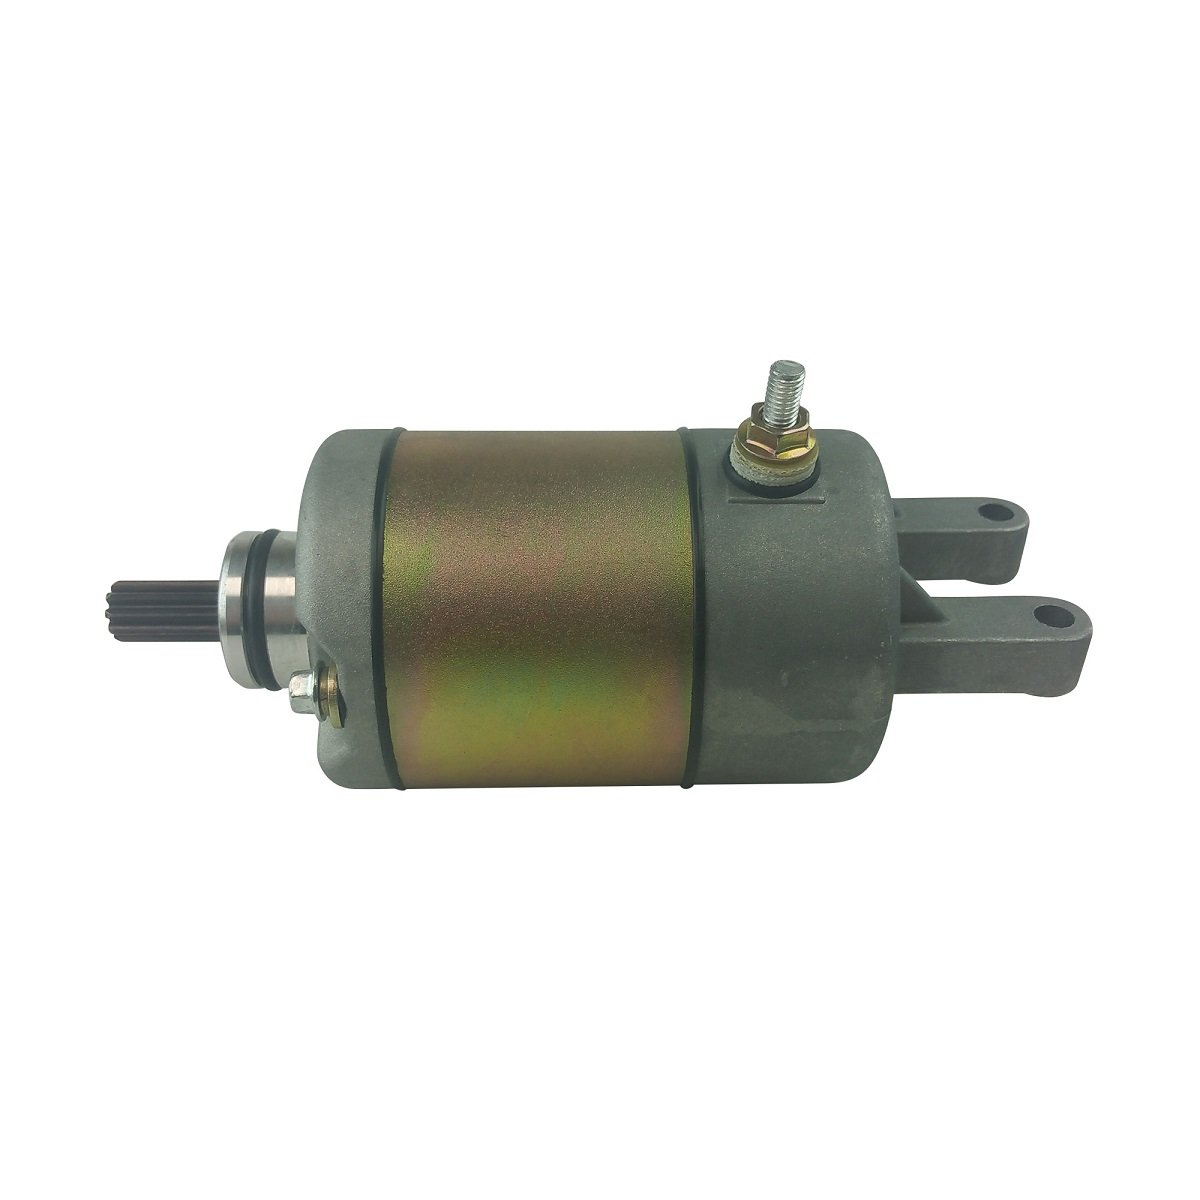 Amazon.com: LINHAI BIGHORN 260CC 300CC 4X4 ATV UTV ASW MANCO TALON STARTER  STARTING